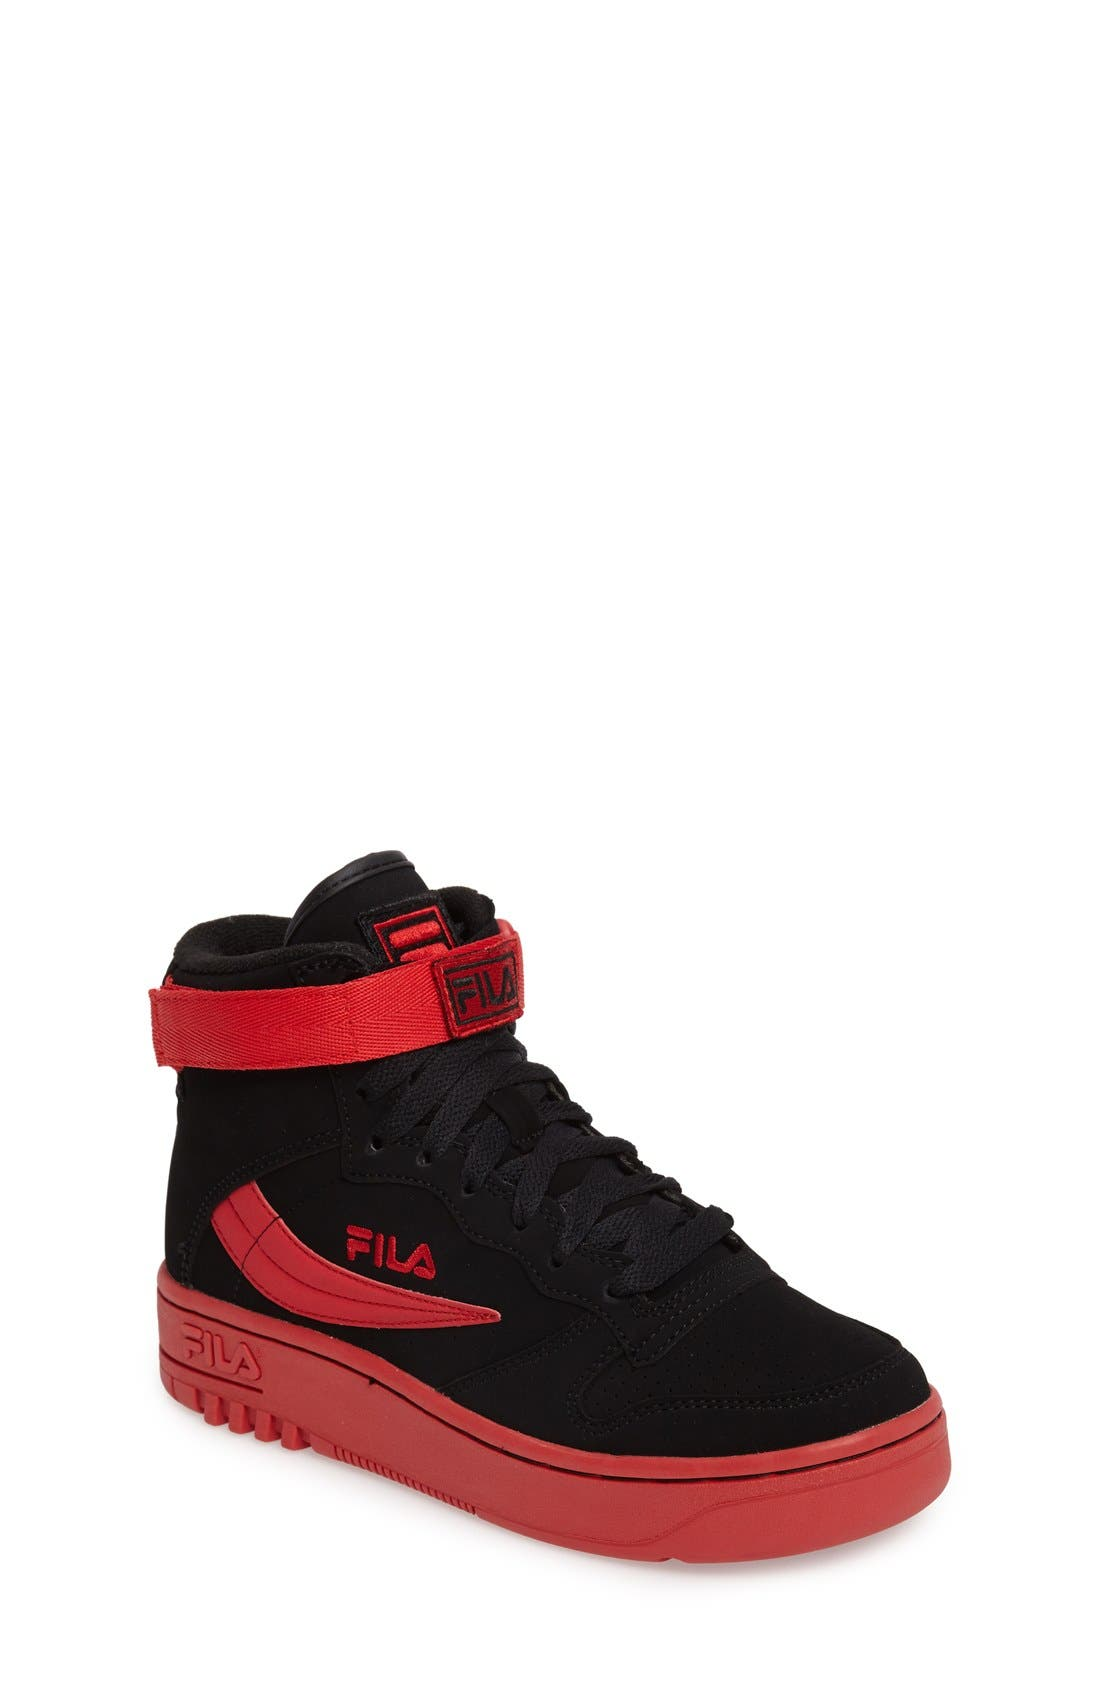 USA FX-100 High Top Sneaker,                             Main thumbnail 1, color,                             Black/ Red